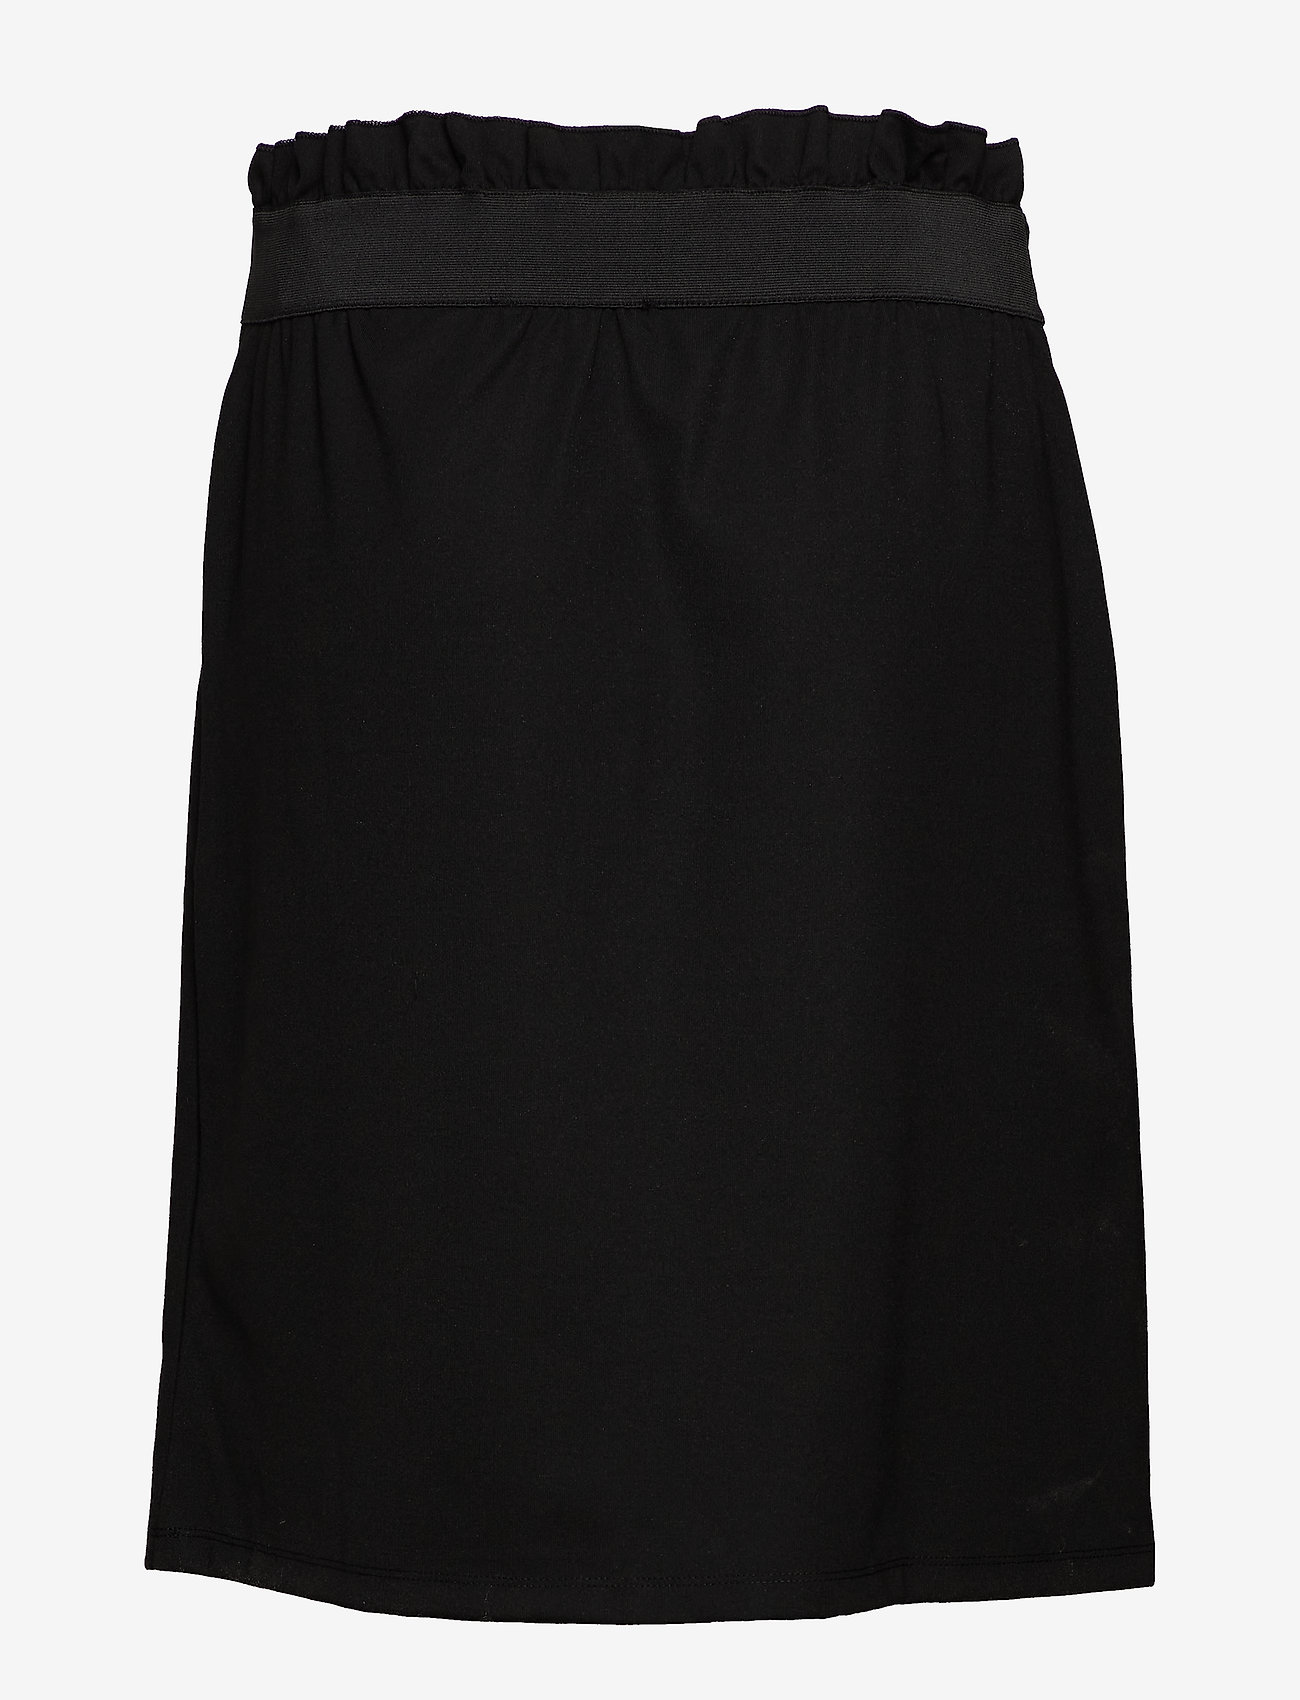 ONLY Carmakoma - CARFELICITY SKIRT - short skirts - black